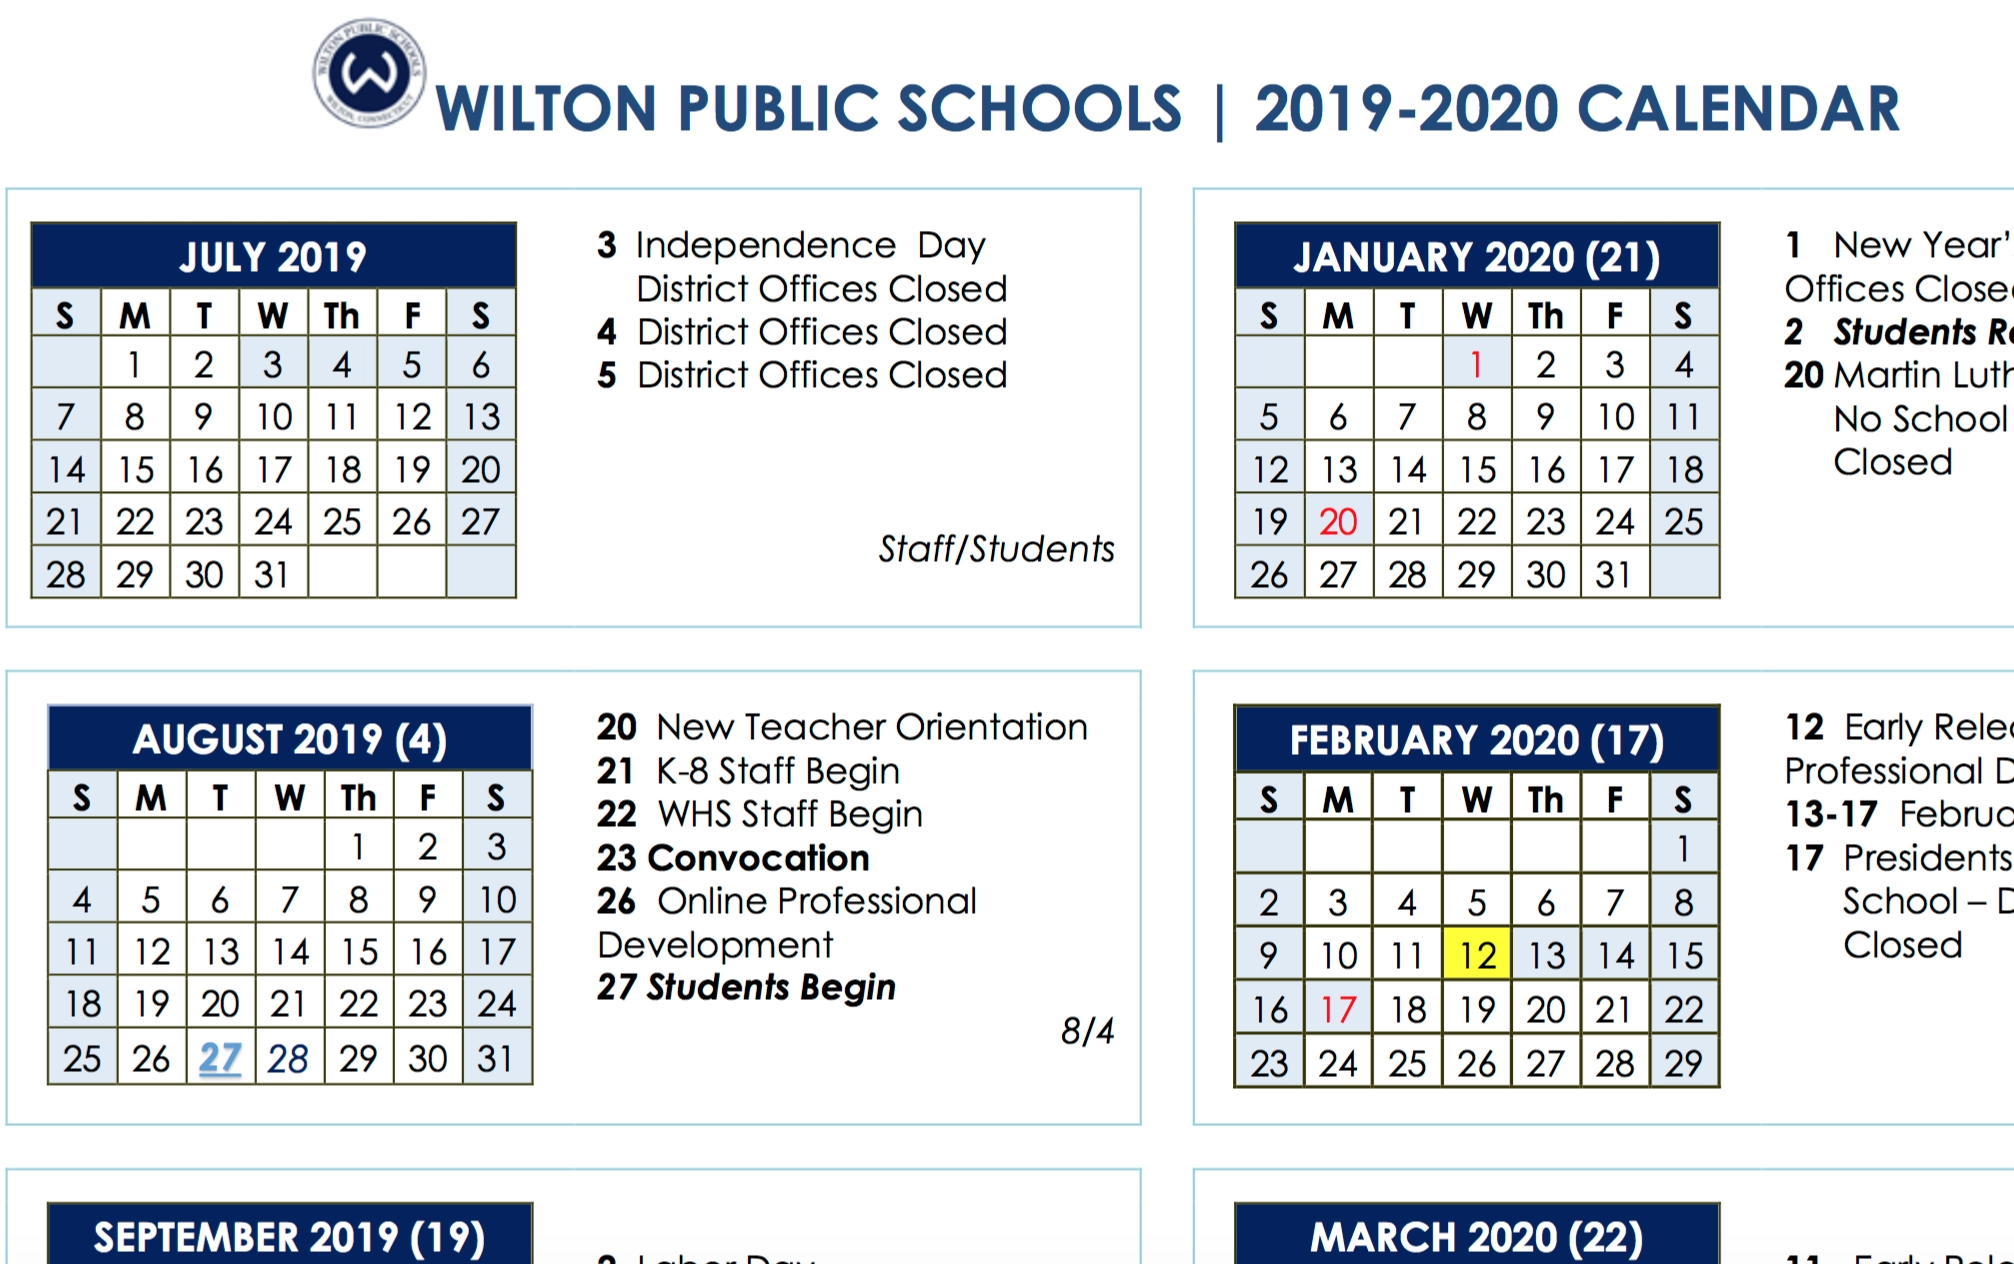 Board Of Education Approves 2019-2020 And 2020-2021 School Year in Special Days 2019-2020